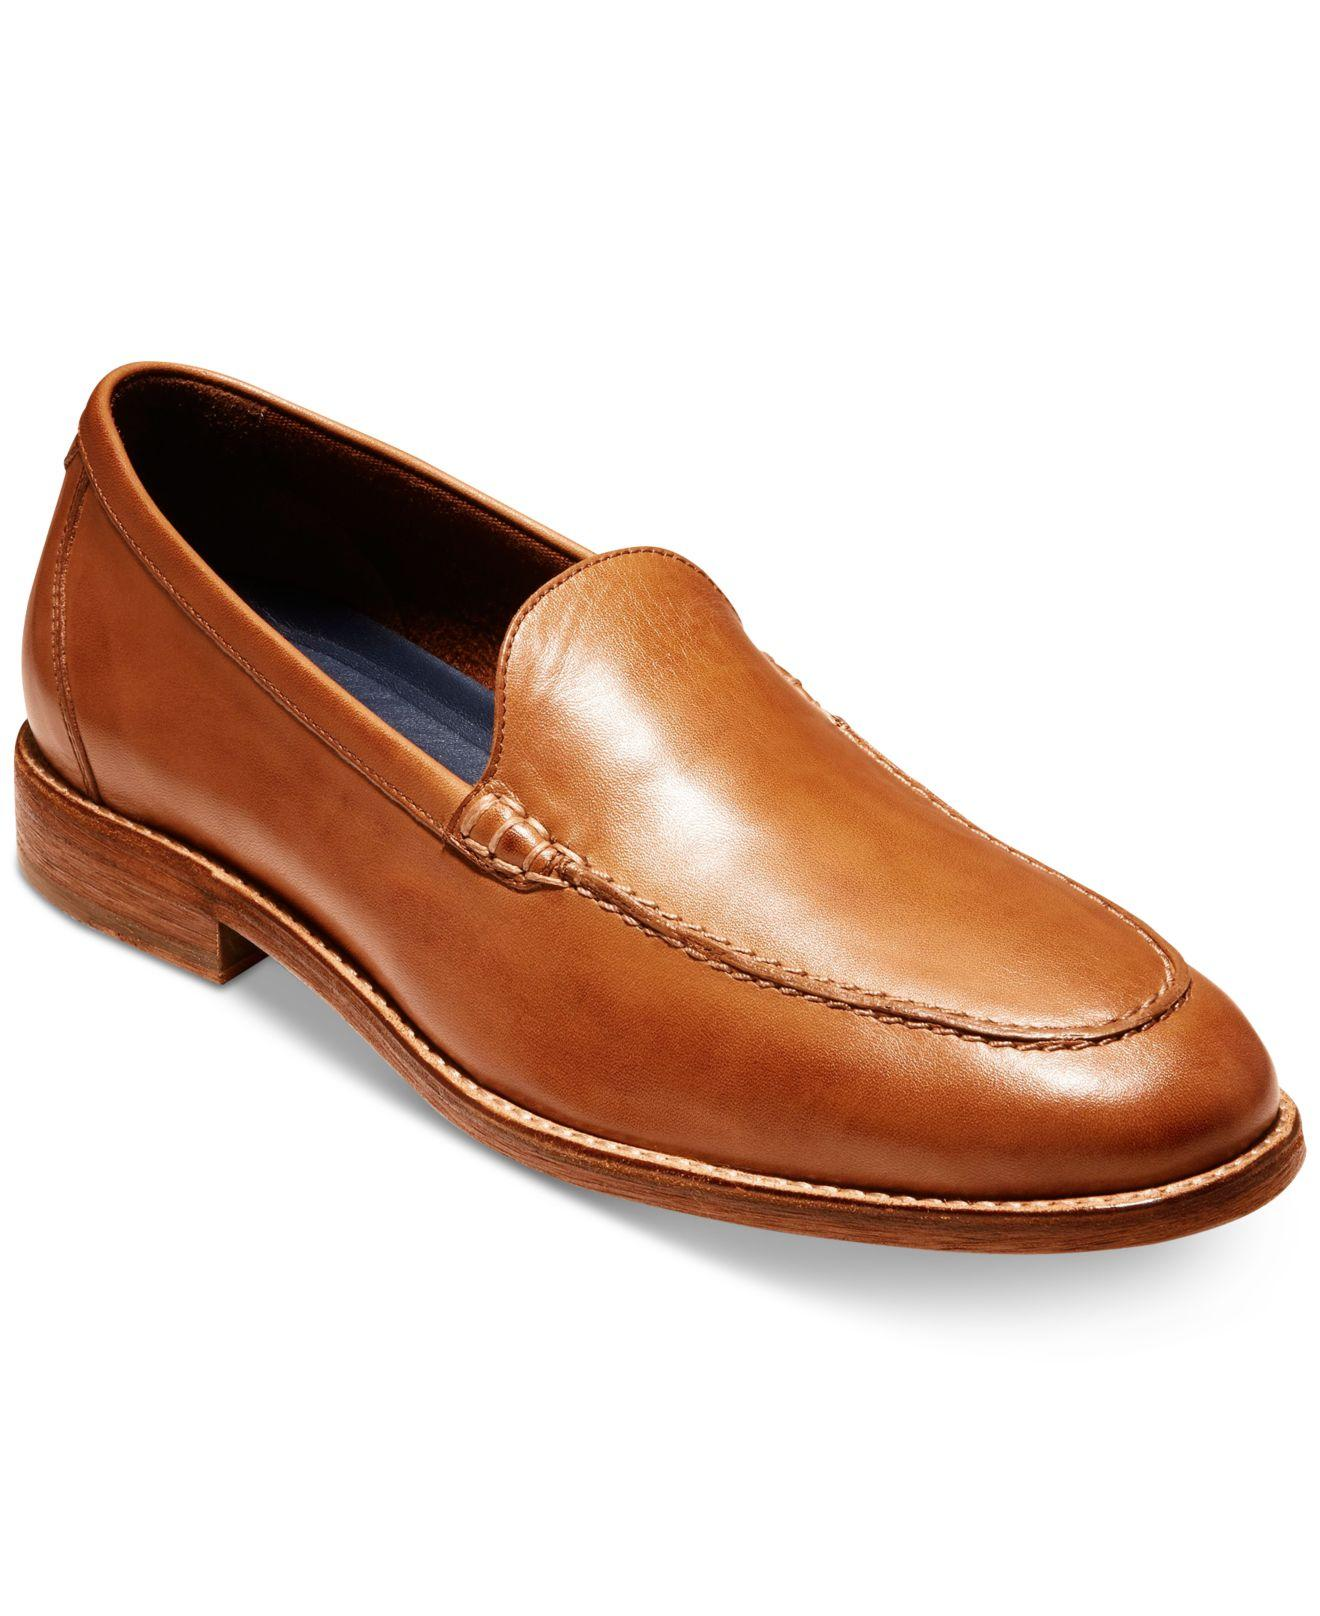 2f876b90d1e Lyst - Cole Haan Feathercraft Grand Venetian Loafers in Brown for Men